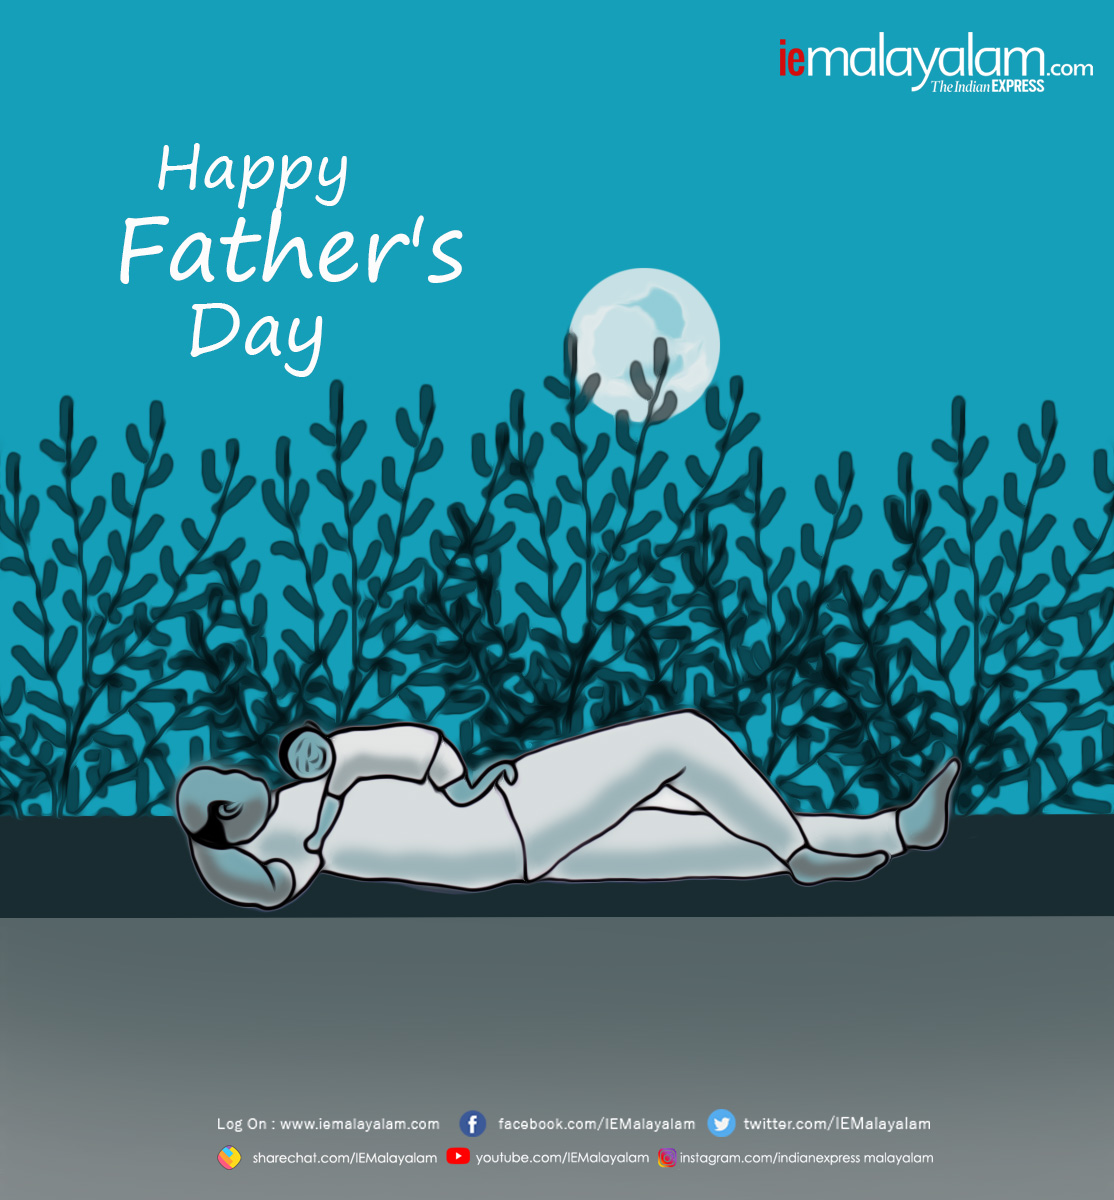 happy father's day, father's day, ഫാദേഴ്സ് ഡേ, father's day special wishes, father's day love, appa love, ഫാദേഴ്സ് ഡേ ആശംസകൾ, baba love, wish you dad a very happy father's day, father's day 2020, daddy's day, father's day news, big daddy, relationship with father, strict dad, happy fathers day, daddy day, happy fathers day 2020, happy father's day, happy father's day 2020,ഫാദേഴ്സ് ഡേ കാർഡുകൾ, father's day images, father's day wishes images, happy father's day images, happy father's day quotes, happy father's day status, happy fathers day quotes, happy fathers day messages, happy fathers day status, happy fathers day sms, happy fathers day wallpapers, happy father's day messages, happy father's day quotes, happy father's day wallpapers, happy father's day wallpapers, happy father's day greetings, happy father's day pics, happy fathers day wallpapers, fathers day pics, fathers day gifts, ഐഇ​ മലയാളം, ie malayalam